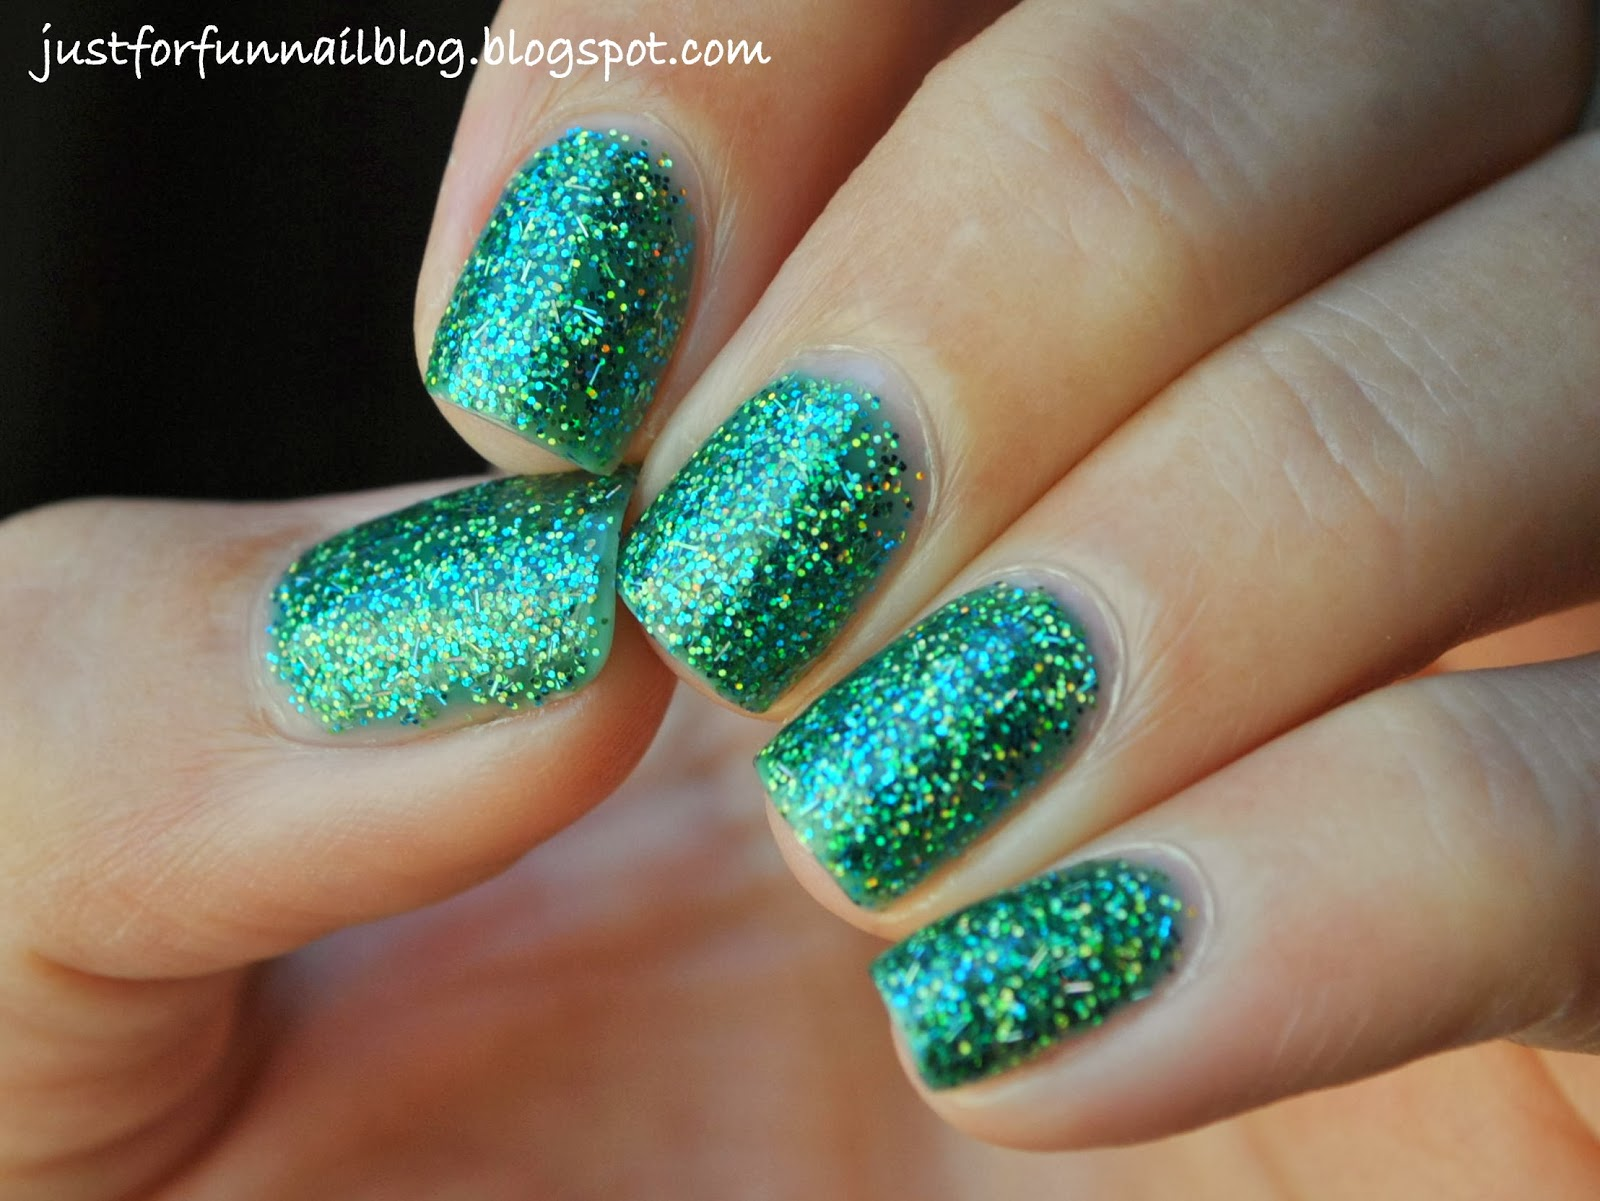 KIKO 441 Illusion Green